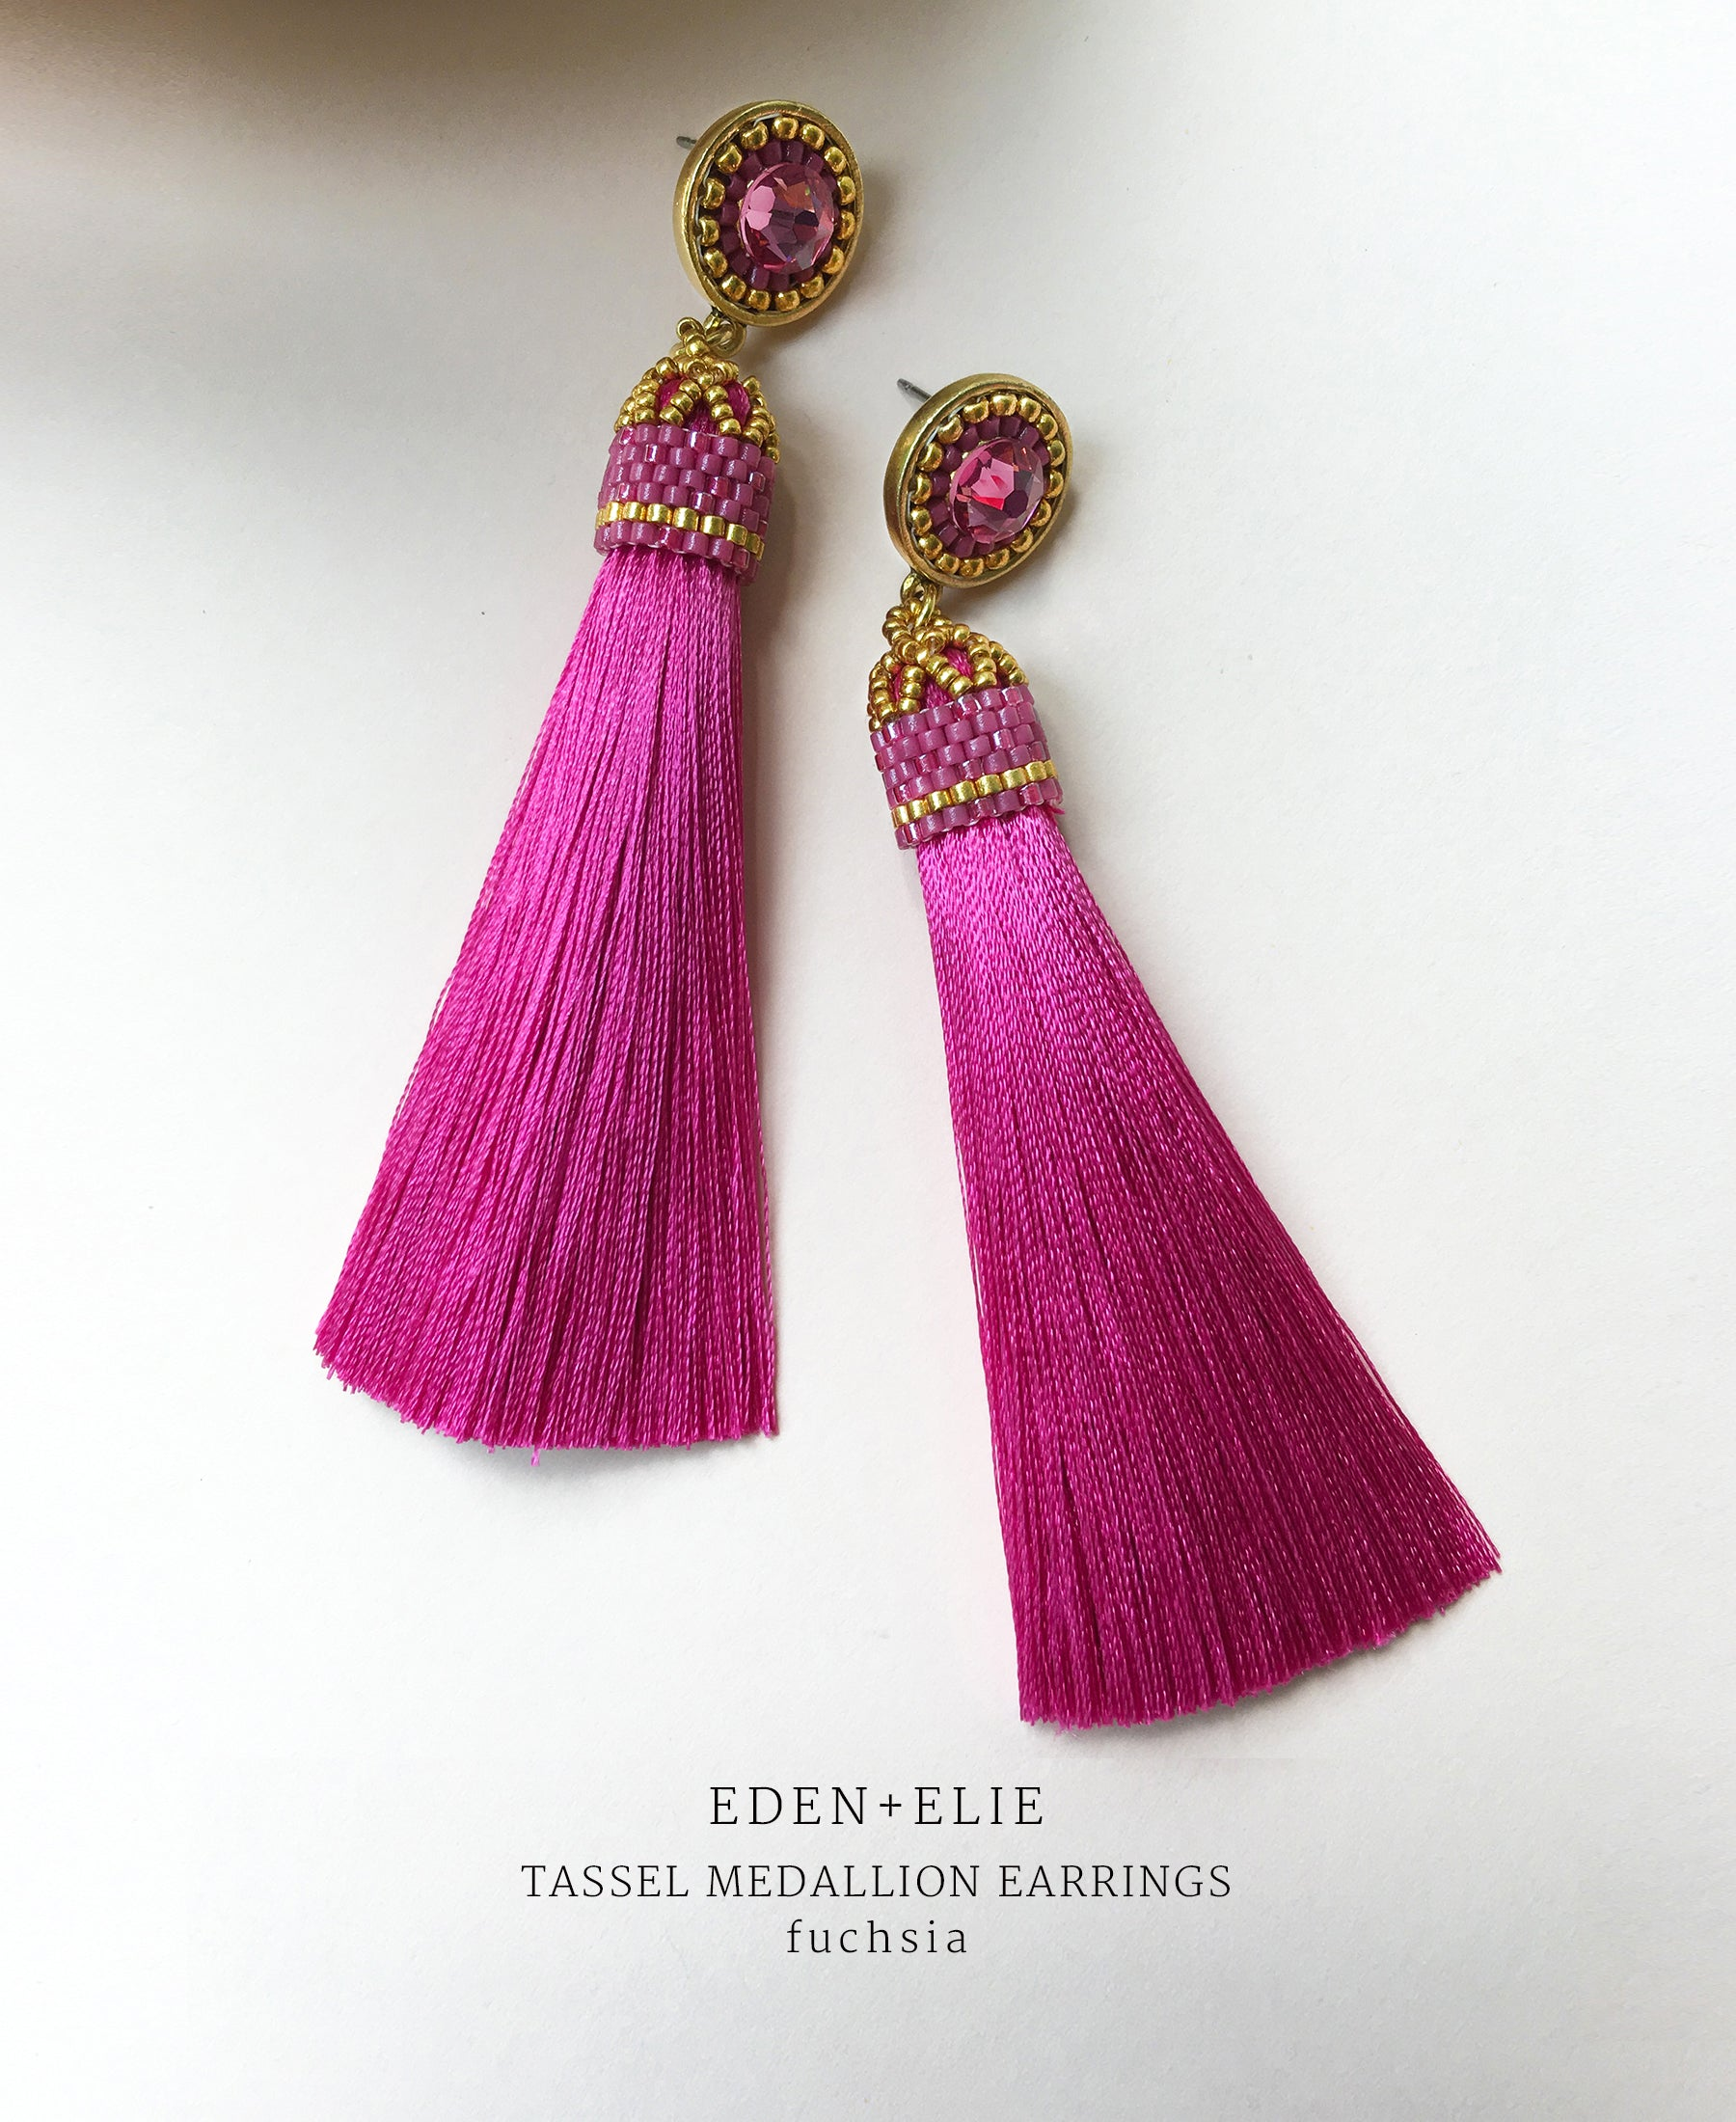 EDEN + ELIE silk tassel statement earrings - fuchsia pink